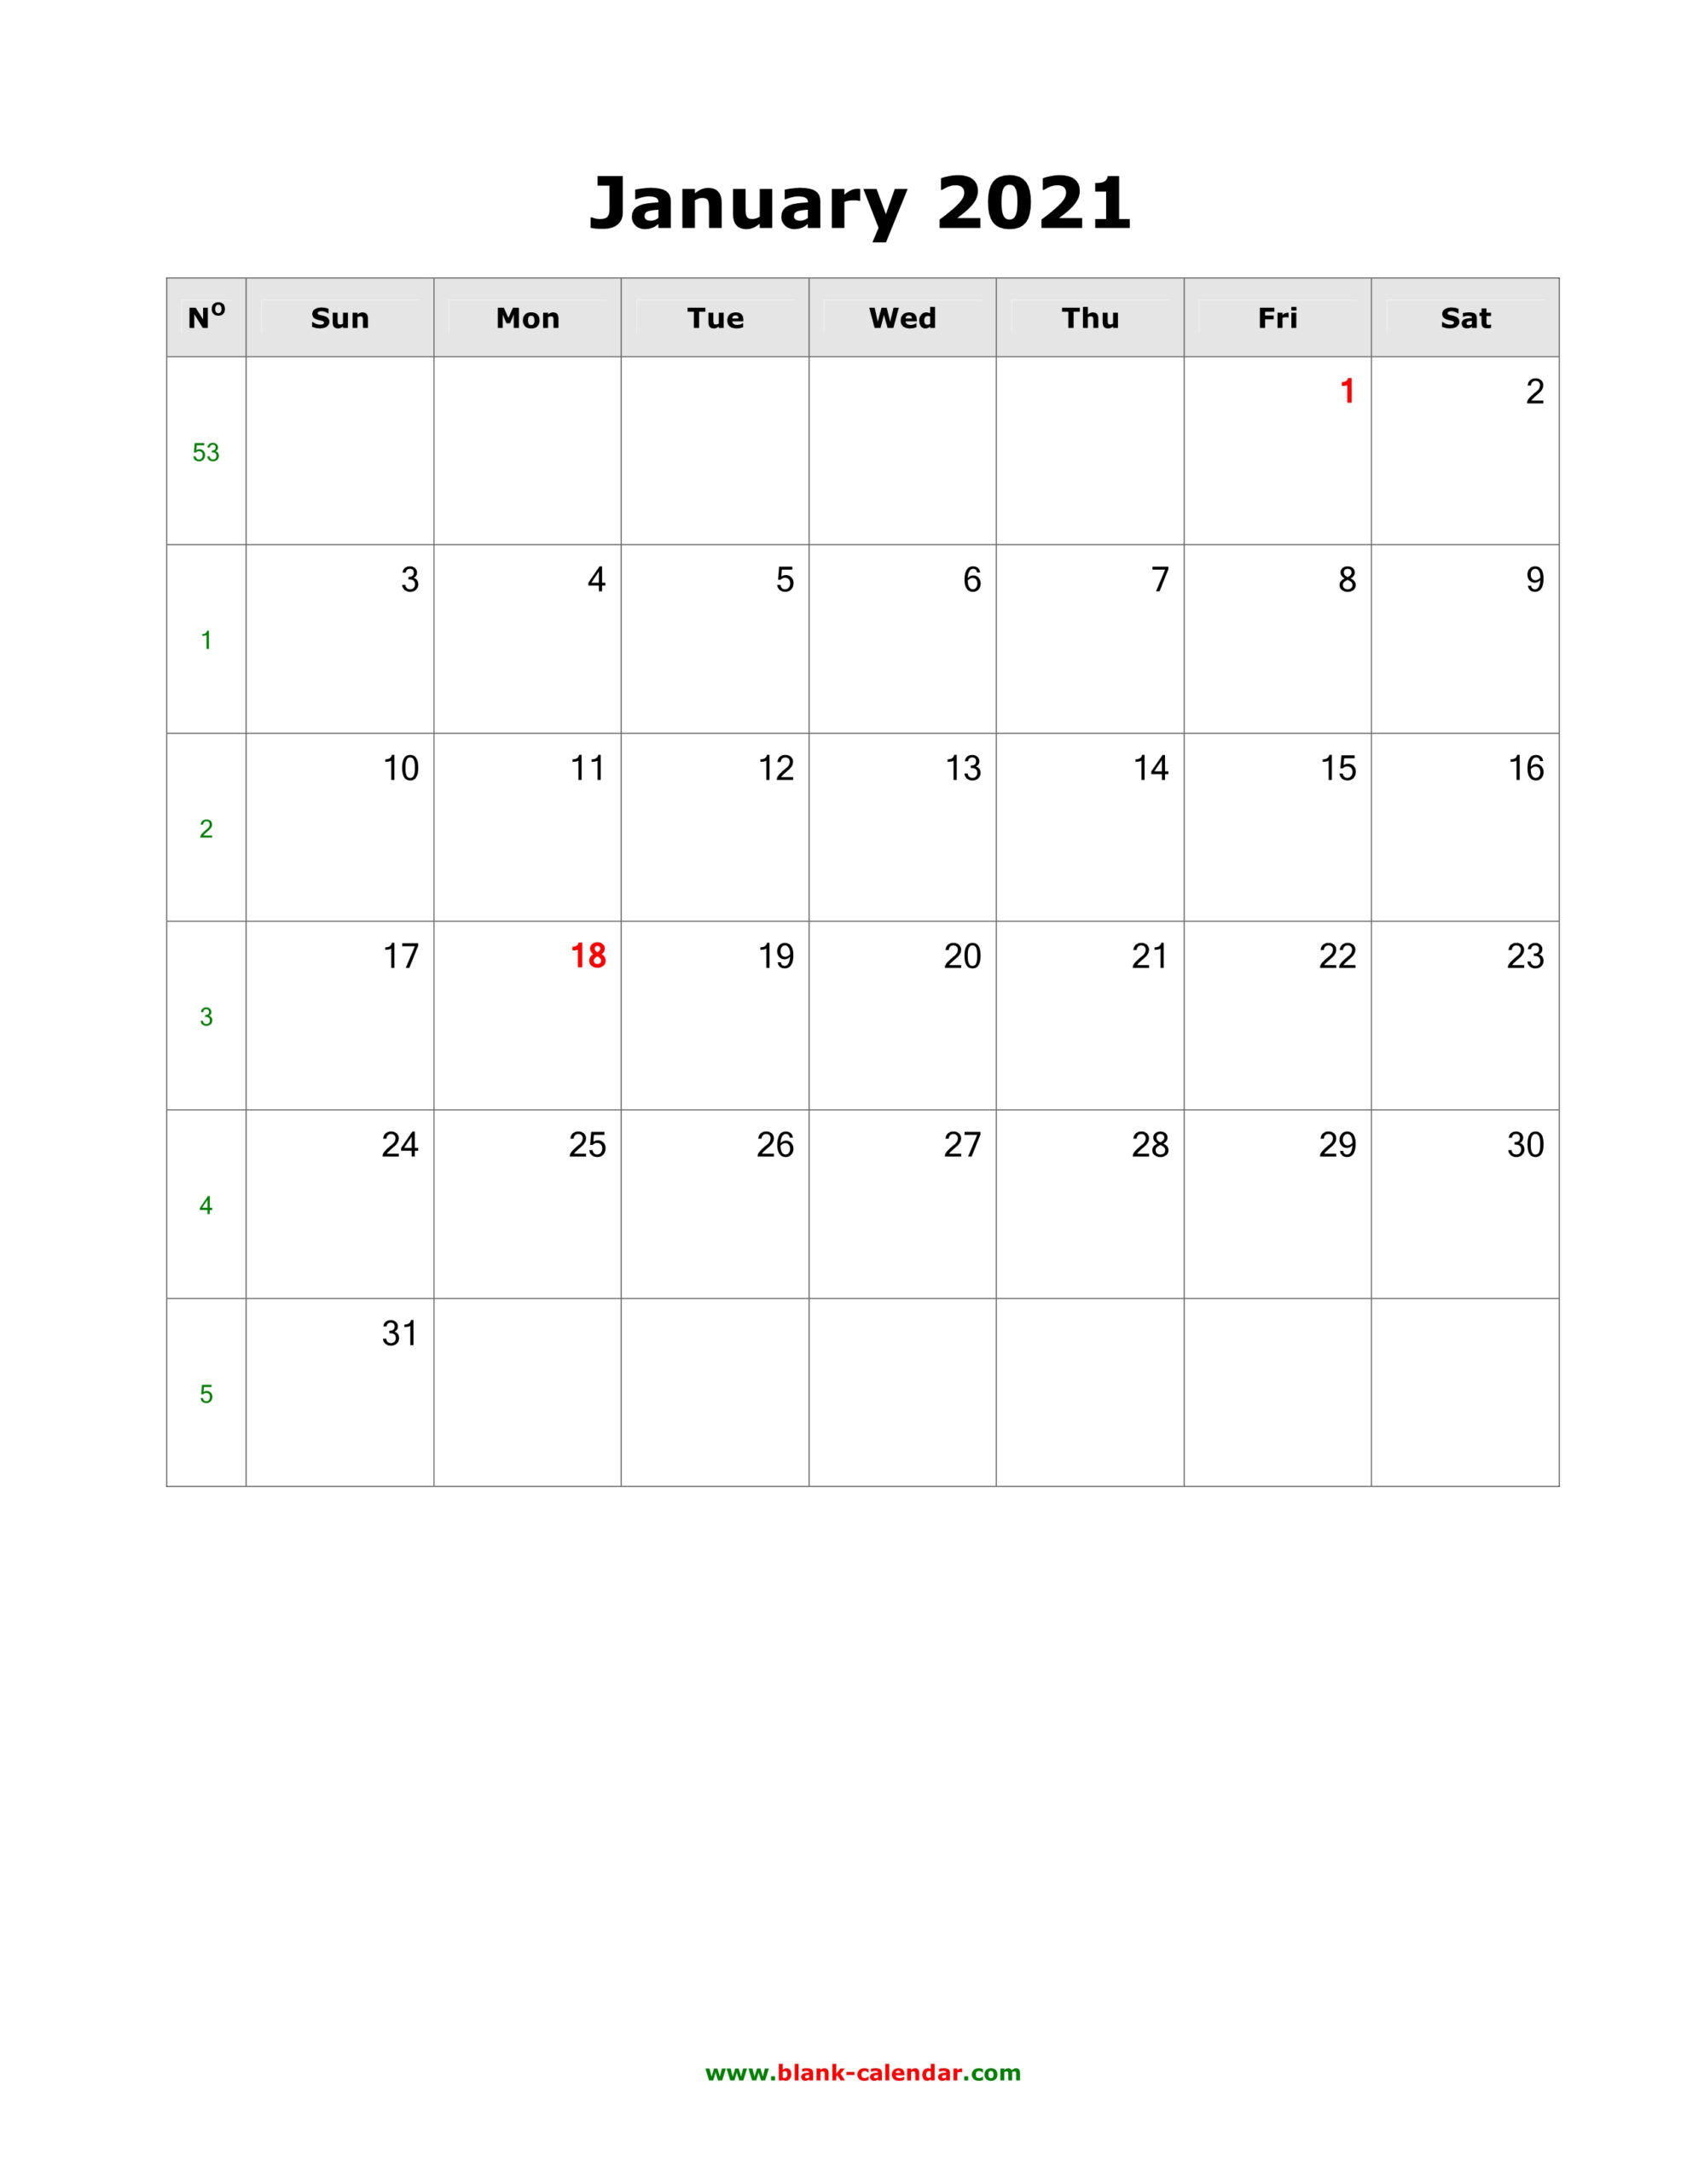 Download January 2021 Blank Calendar (Vertical)